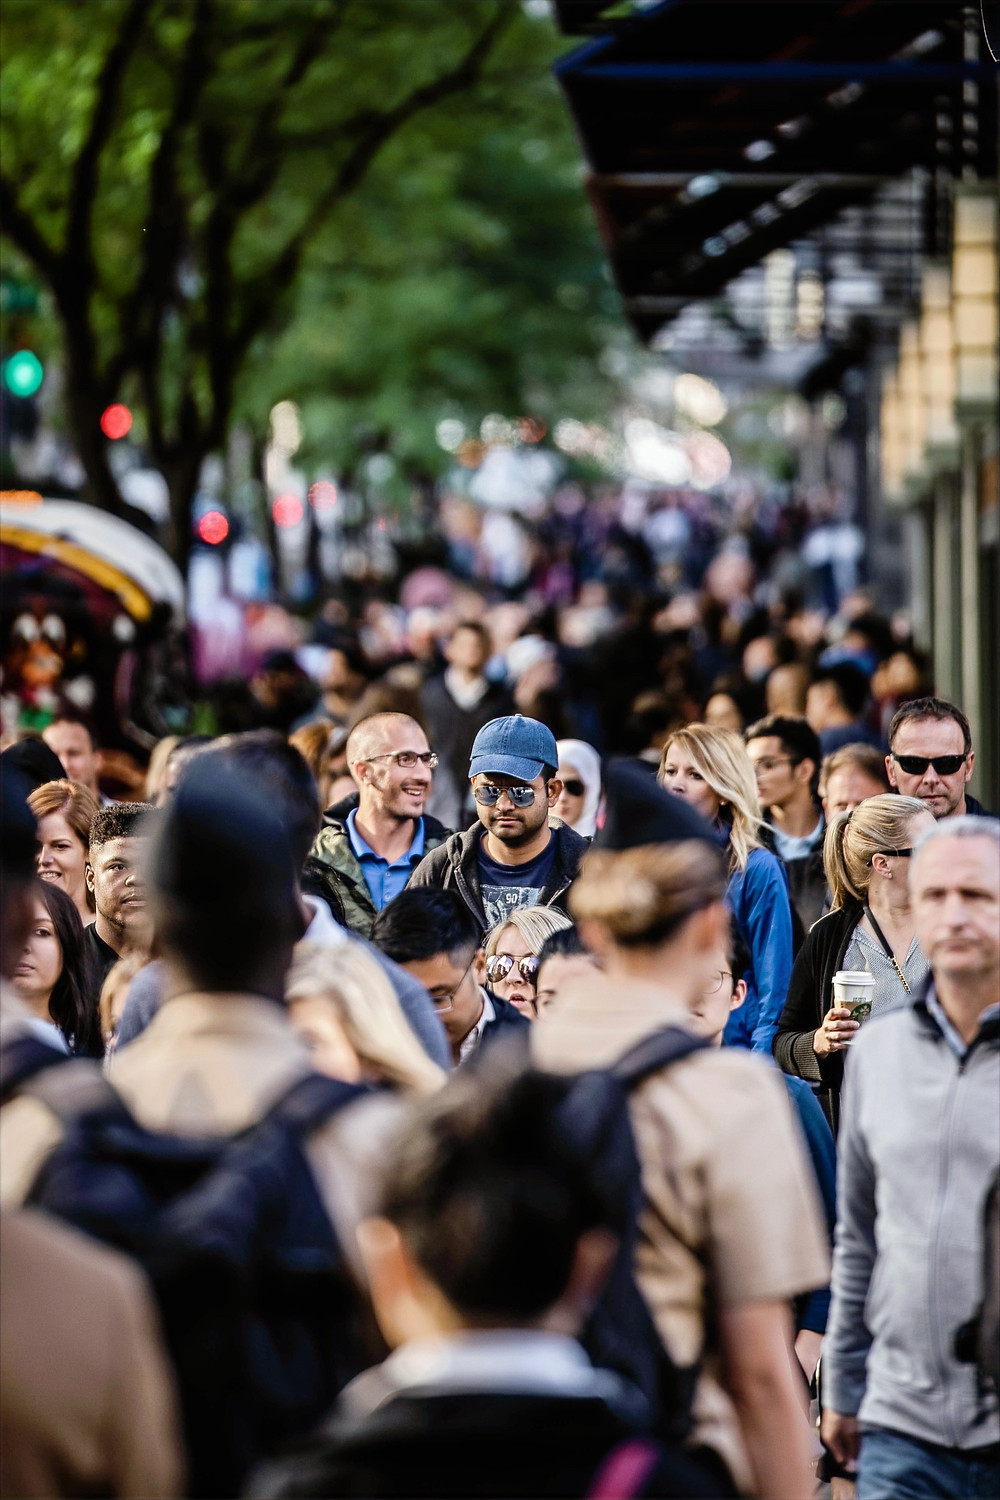 A picture of a crowded street, showing how society is affected by movements such as an increase in lack of empathy.